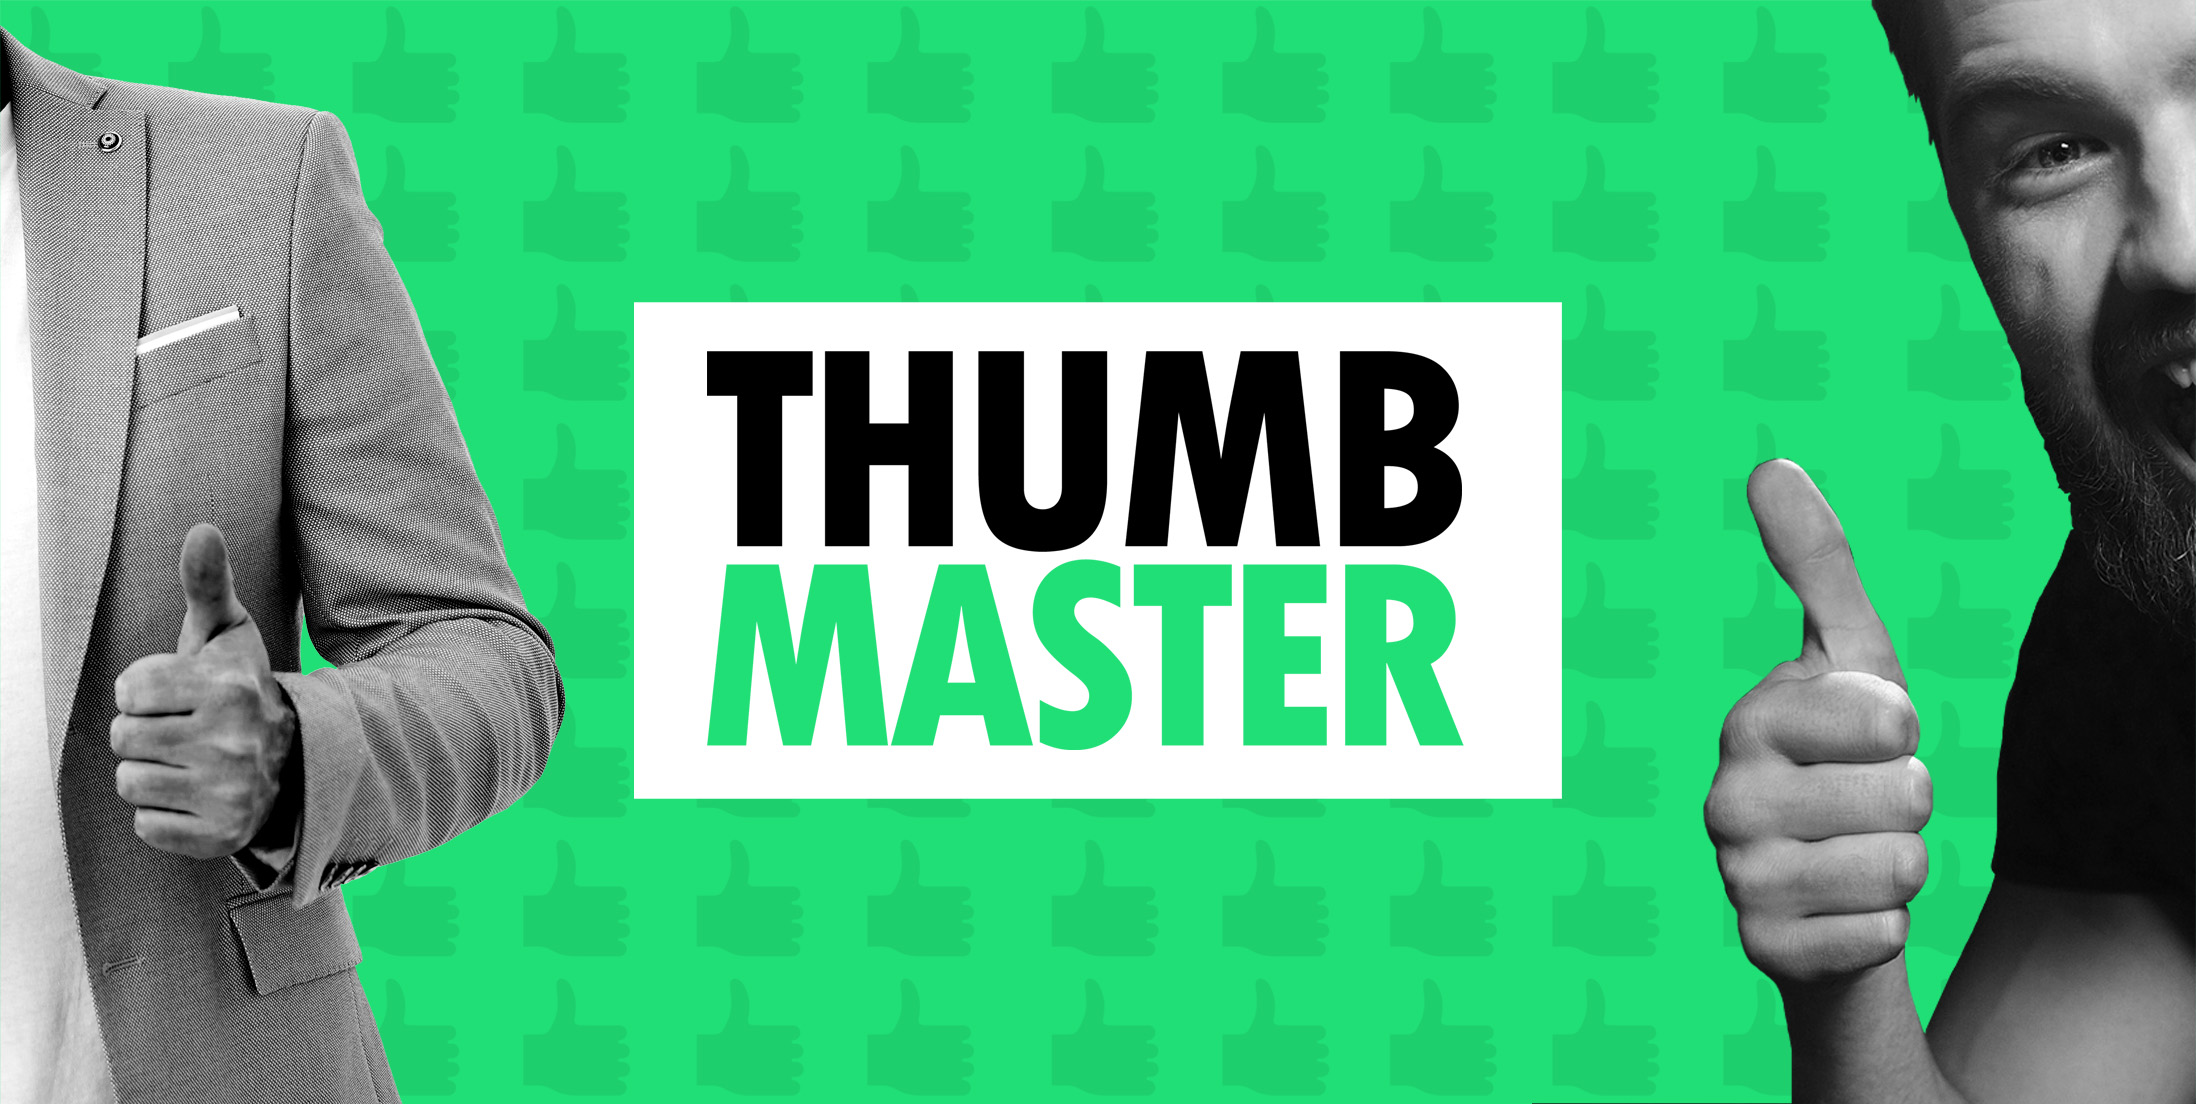 Thumb Master Stag Do Drinking Game